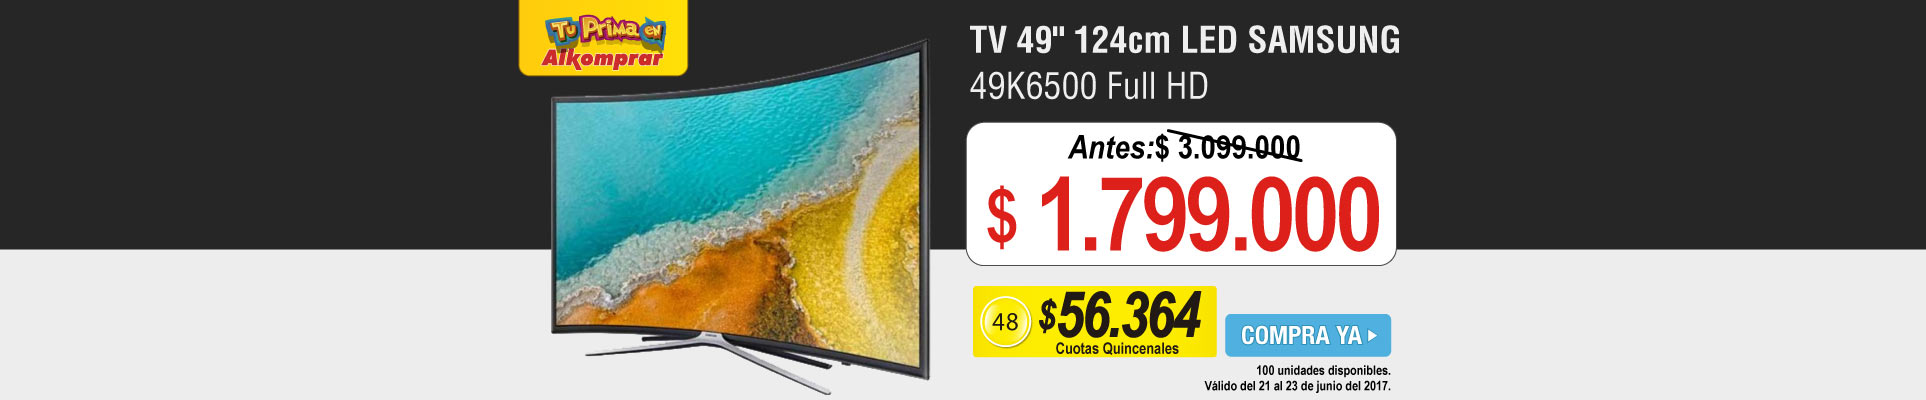 TV 49 124cm LED SAMSUNG 49K6500 Full HD - banner principal